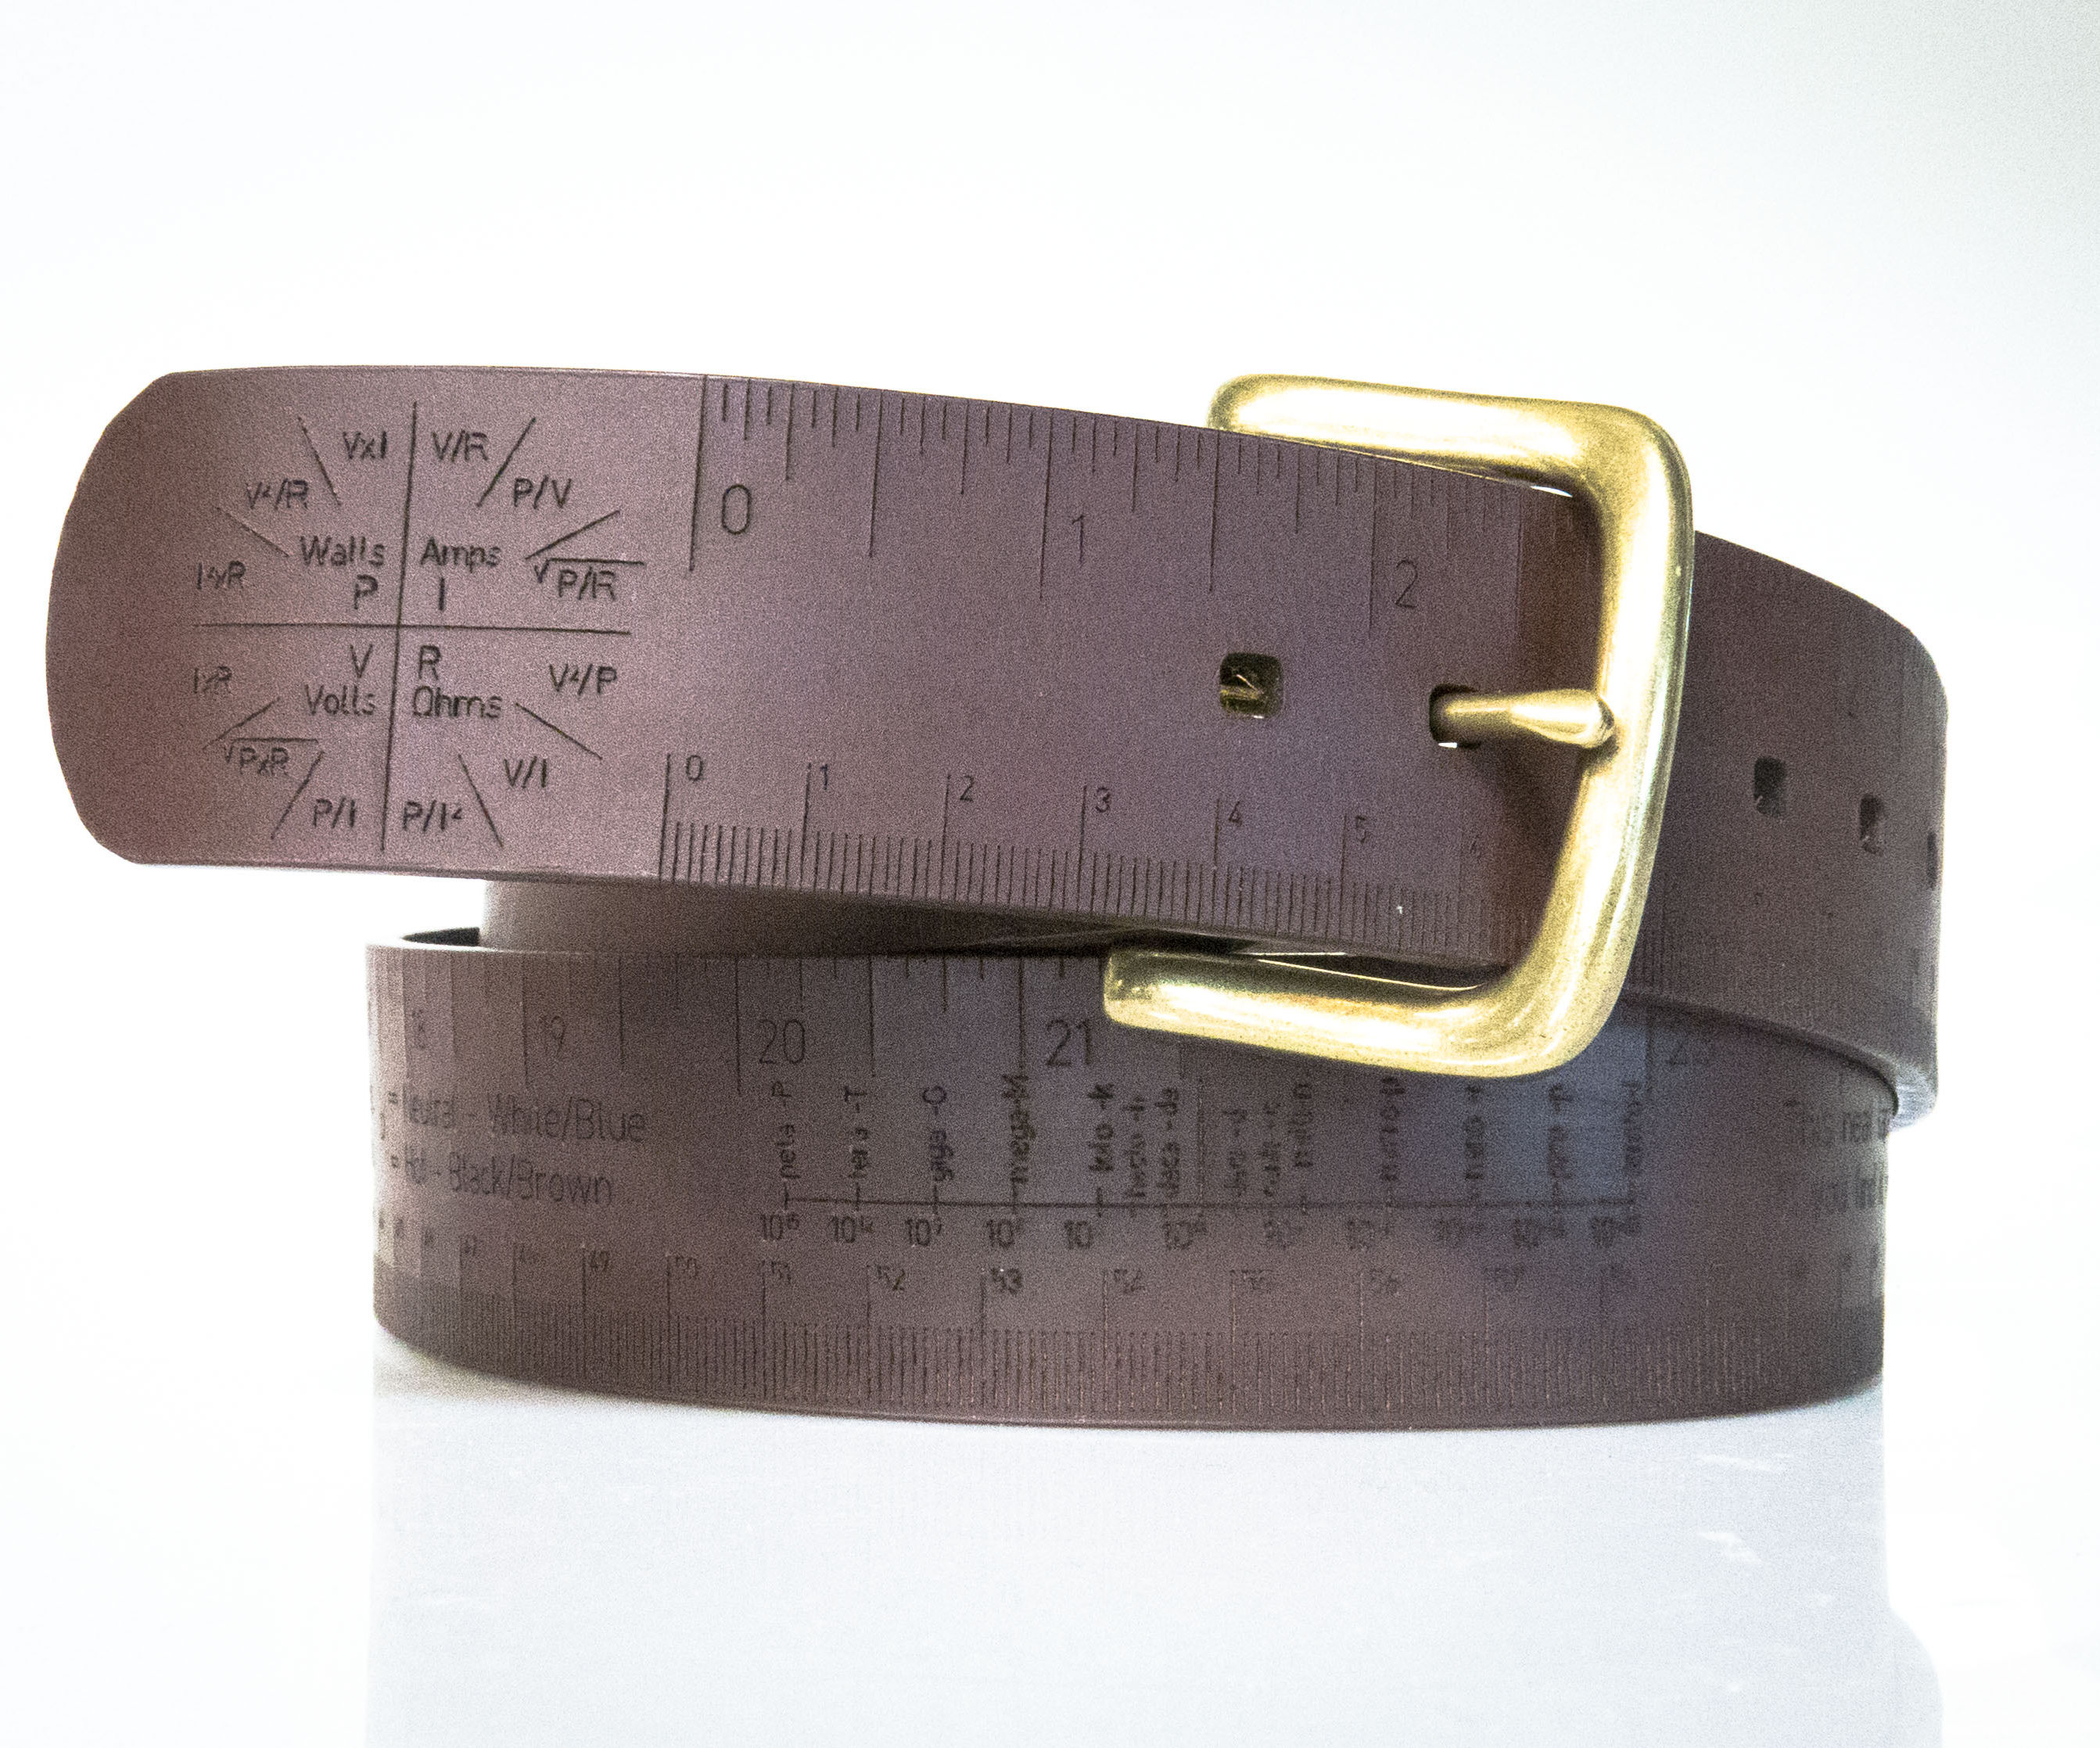 Measuring Tape/Belt — A pocket reference for your waist